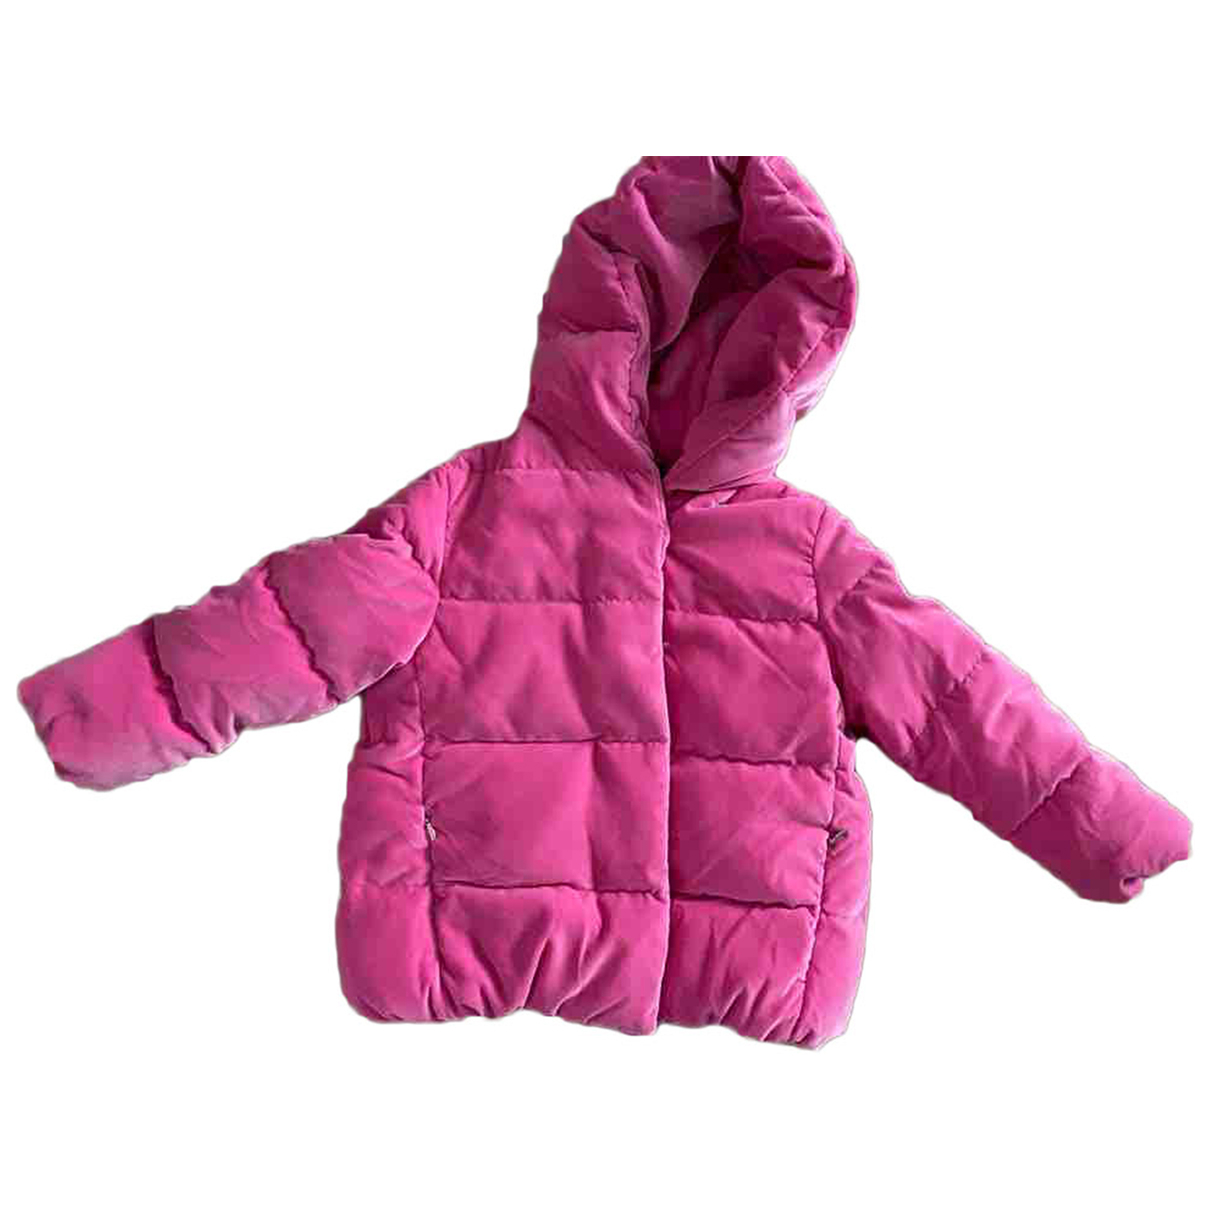 Il Gufo N Pink Velvet jacket & coat for Kids 4 years - up to 102cm FR